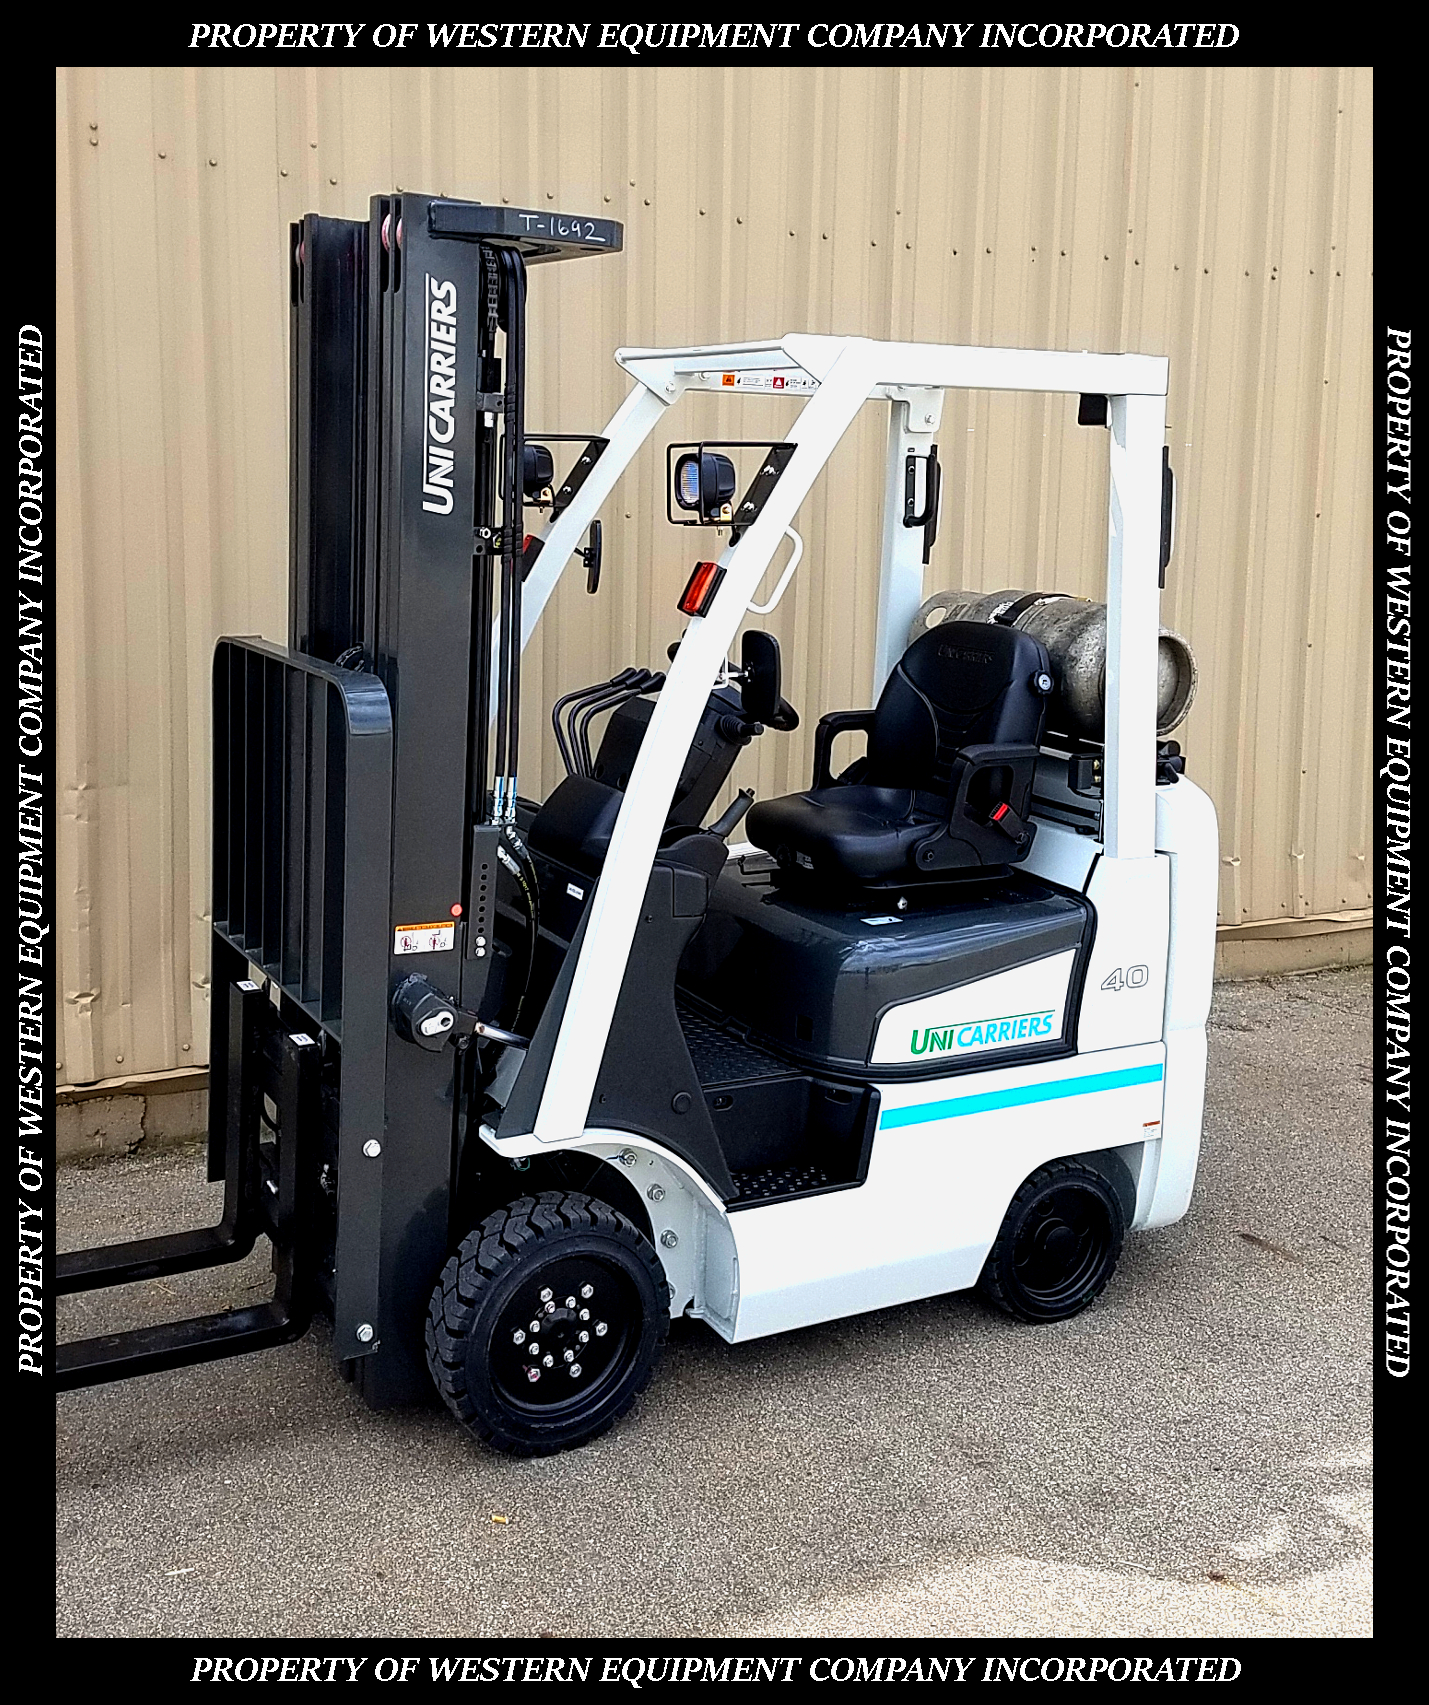 New UniCarriers Forklift